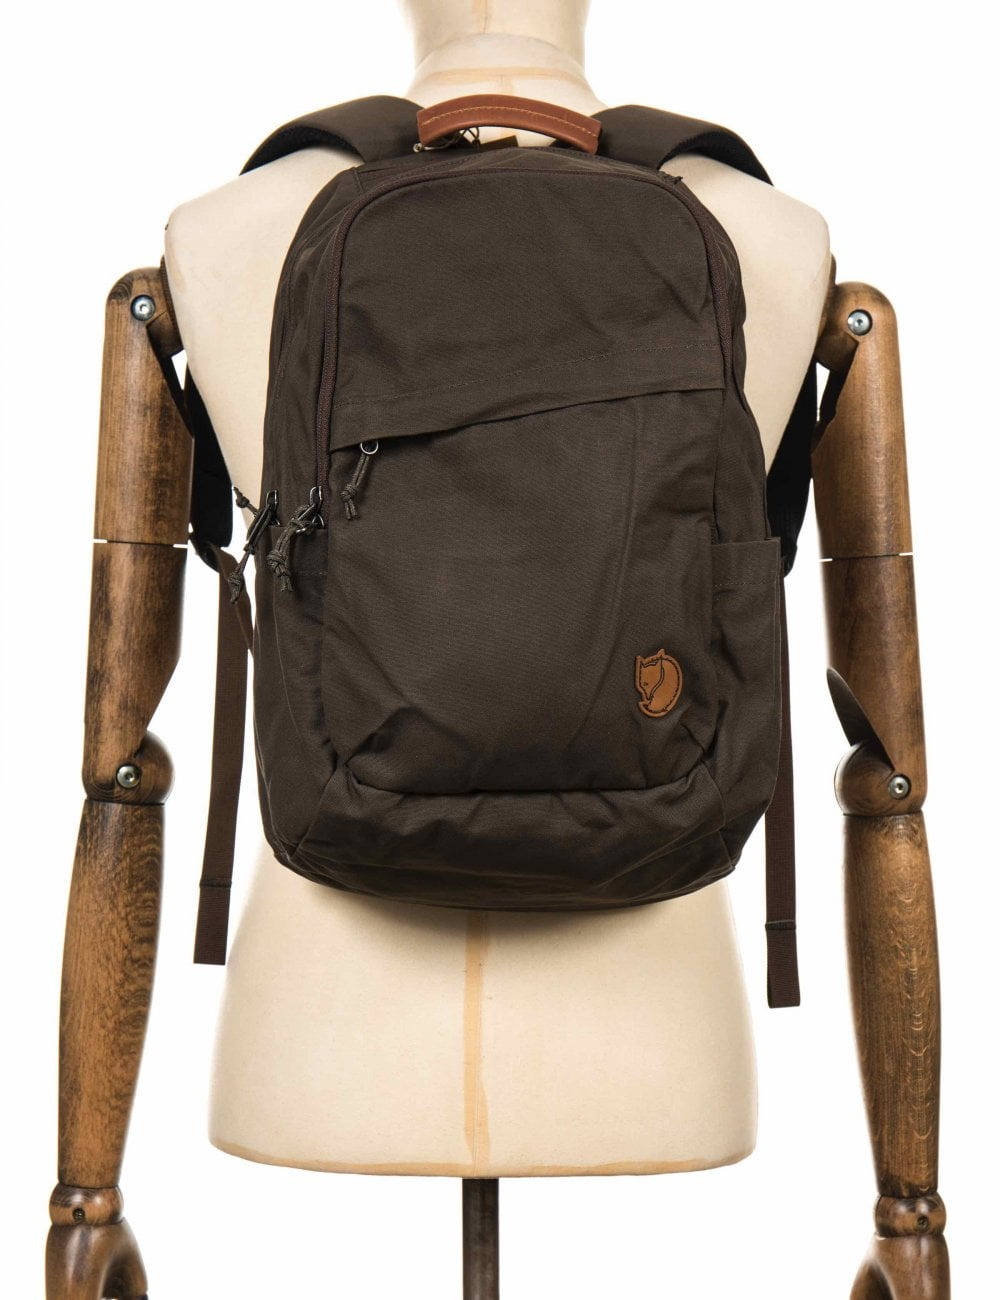 1474290261f5e Fjallraven Raven 20L Backpack - Dark Olive - Bag Shop from Fat ...